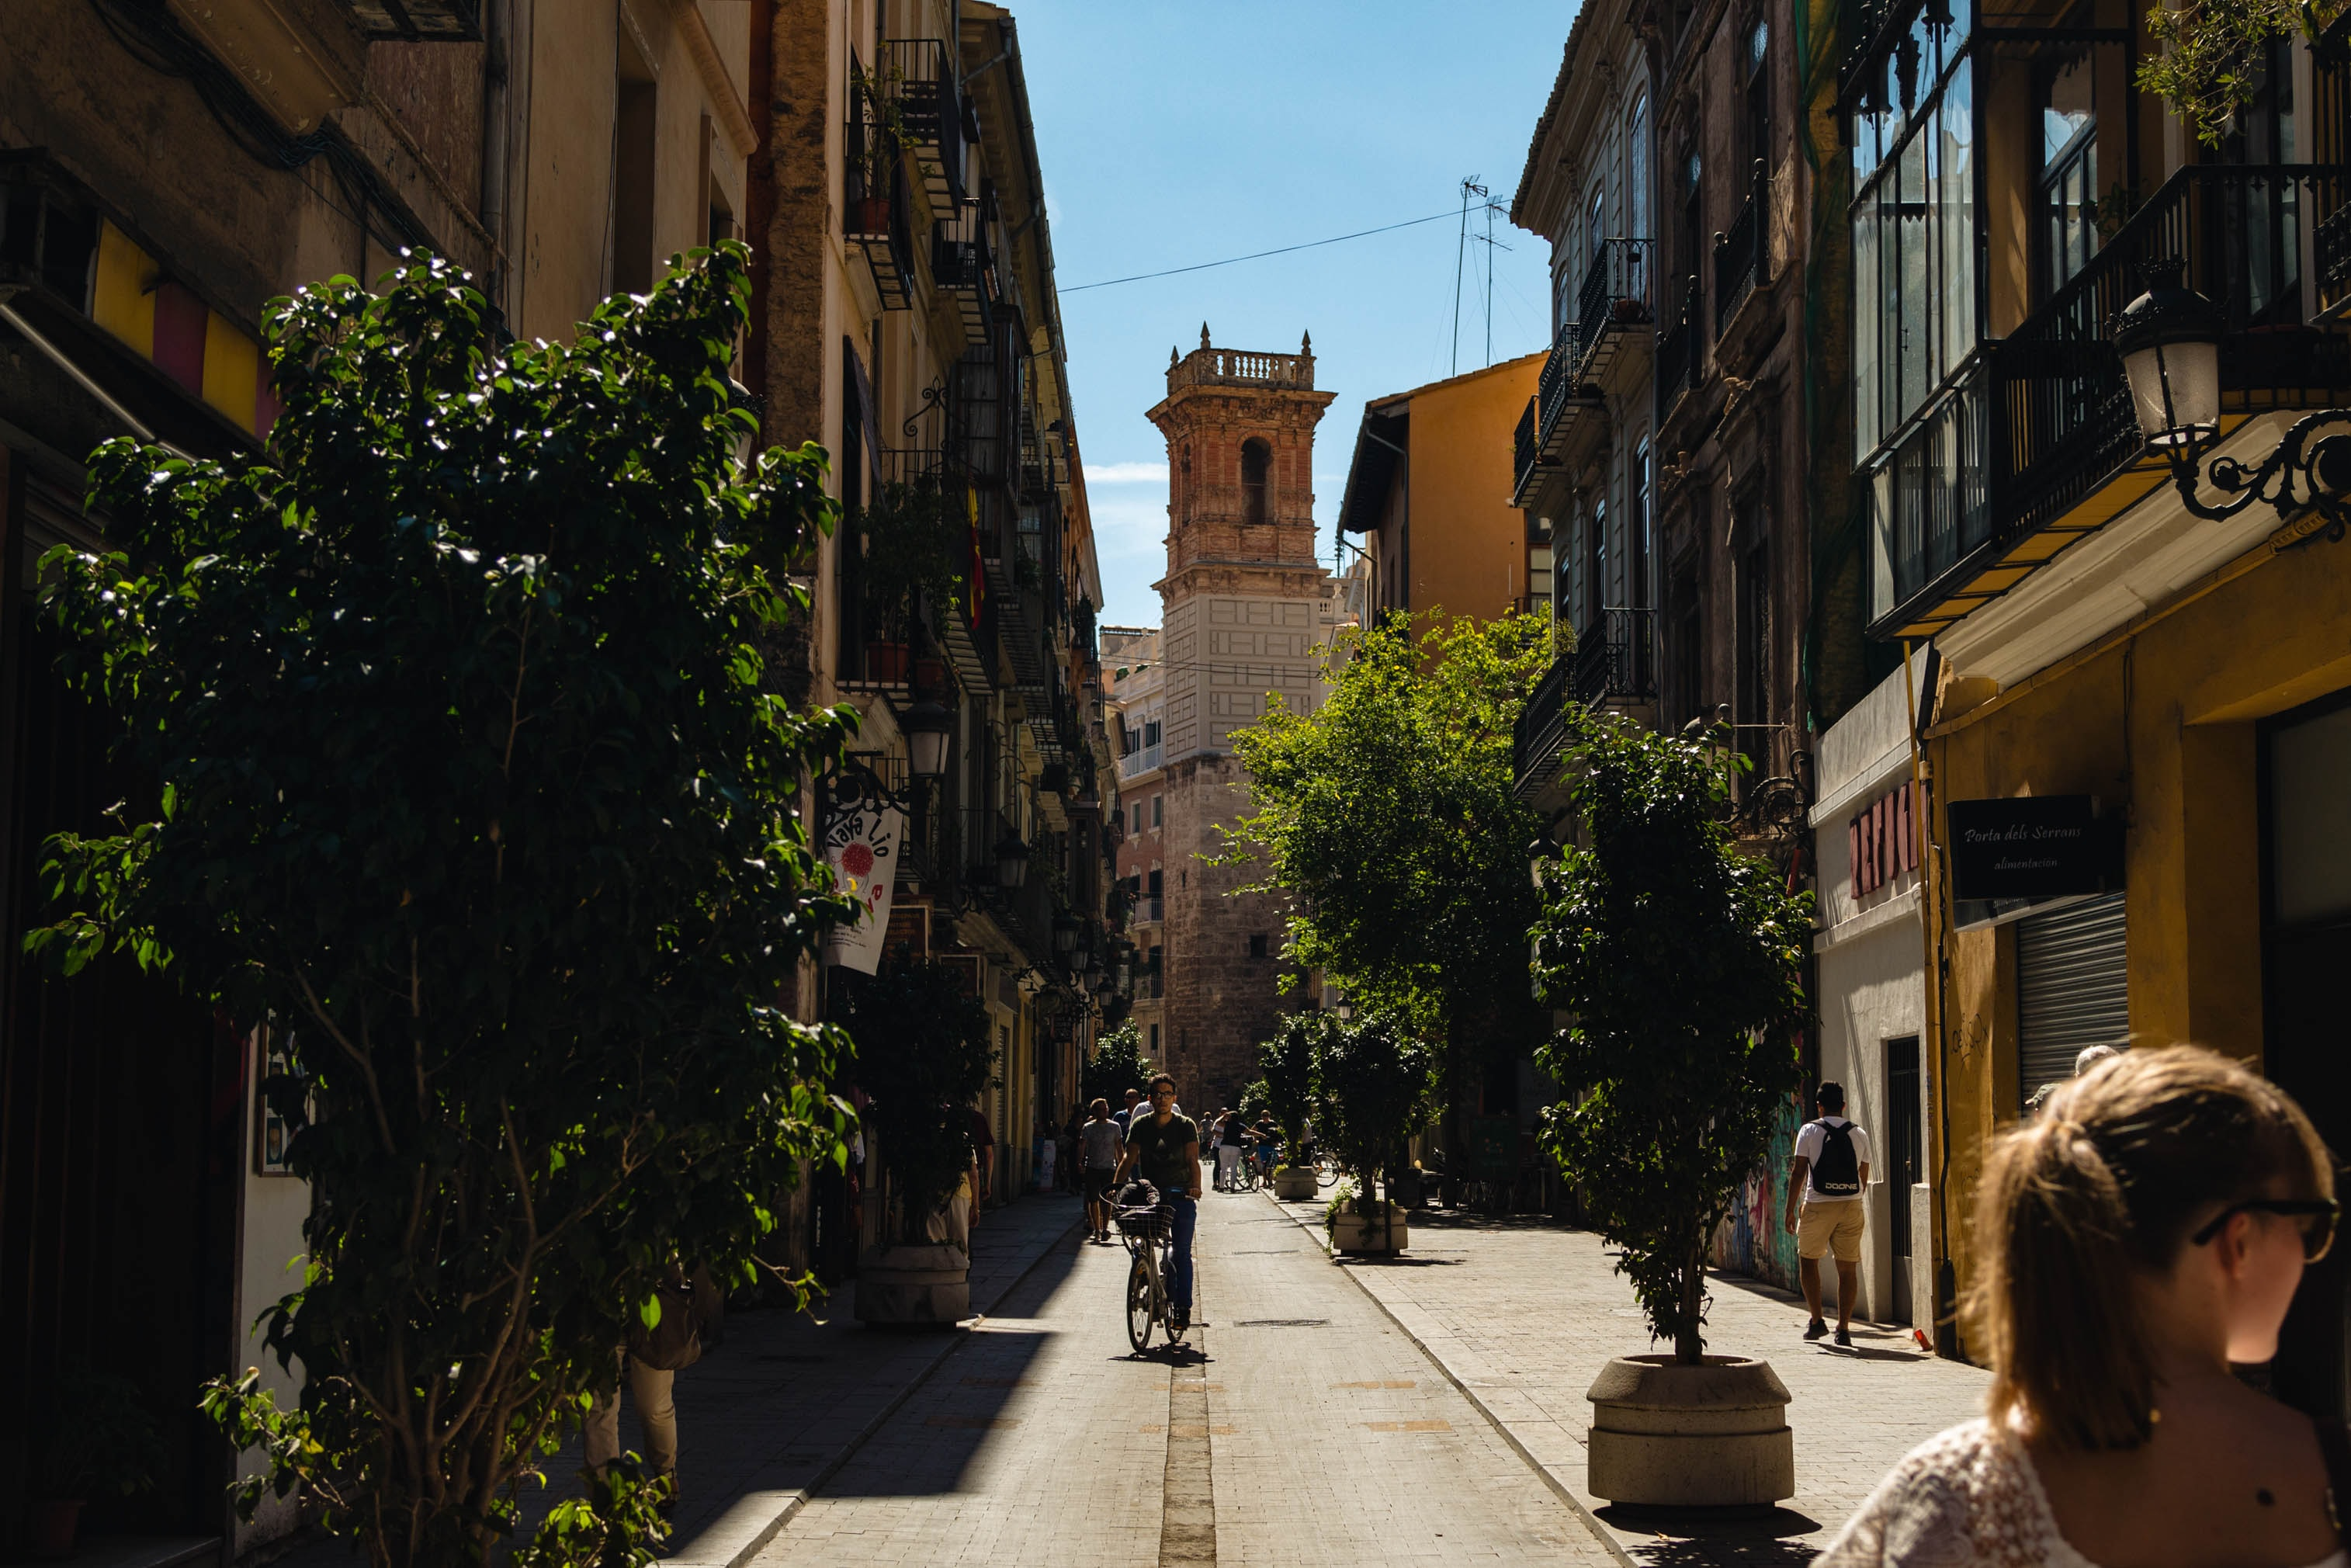 man riding bicycle near narrow street surrounded by buildings during daytime